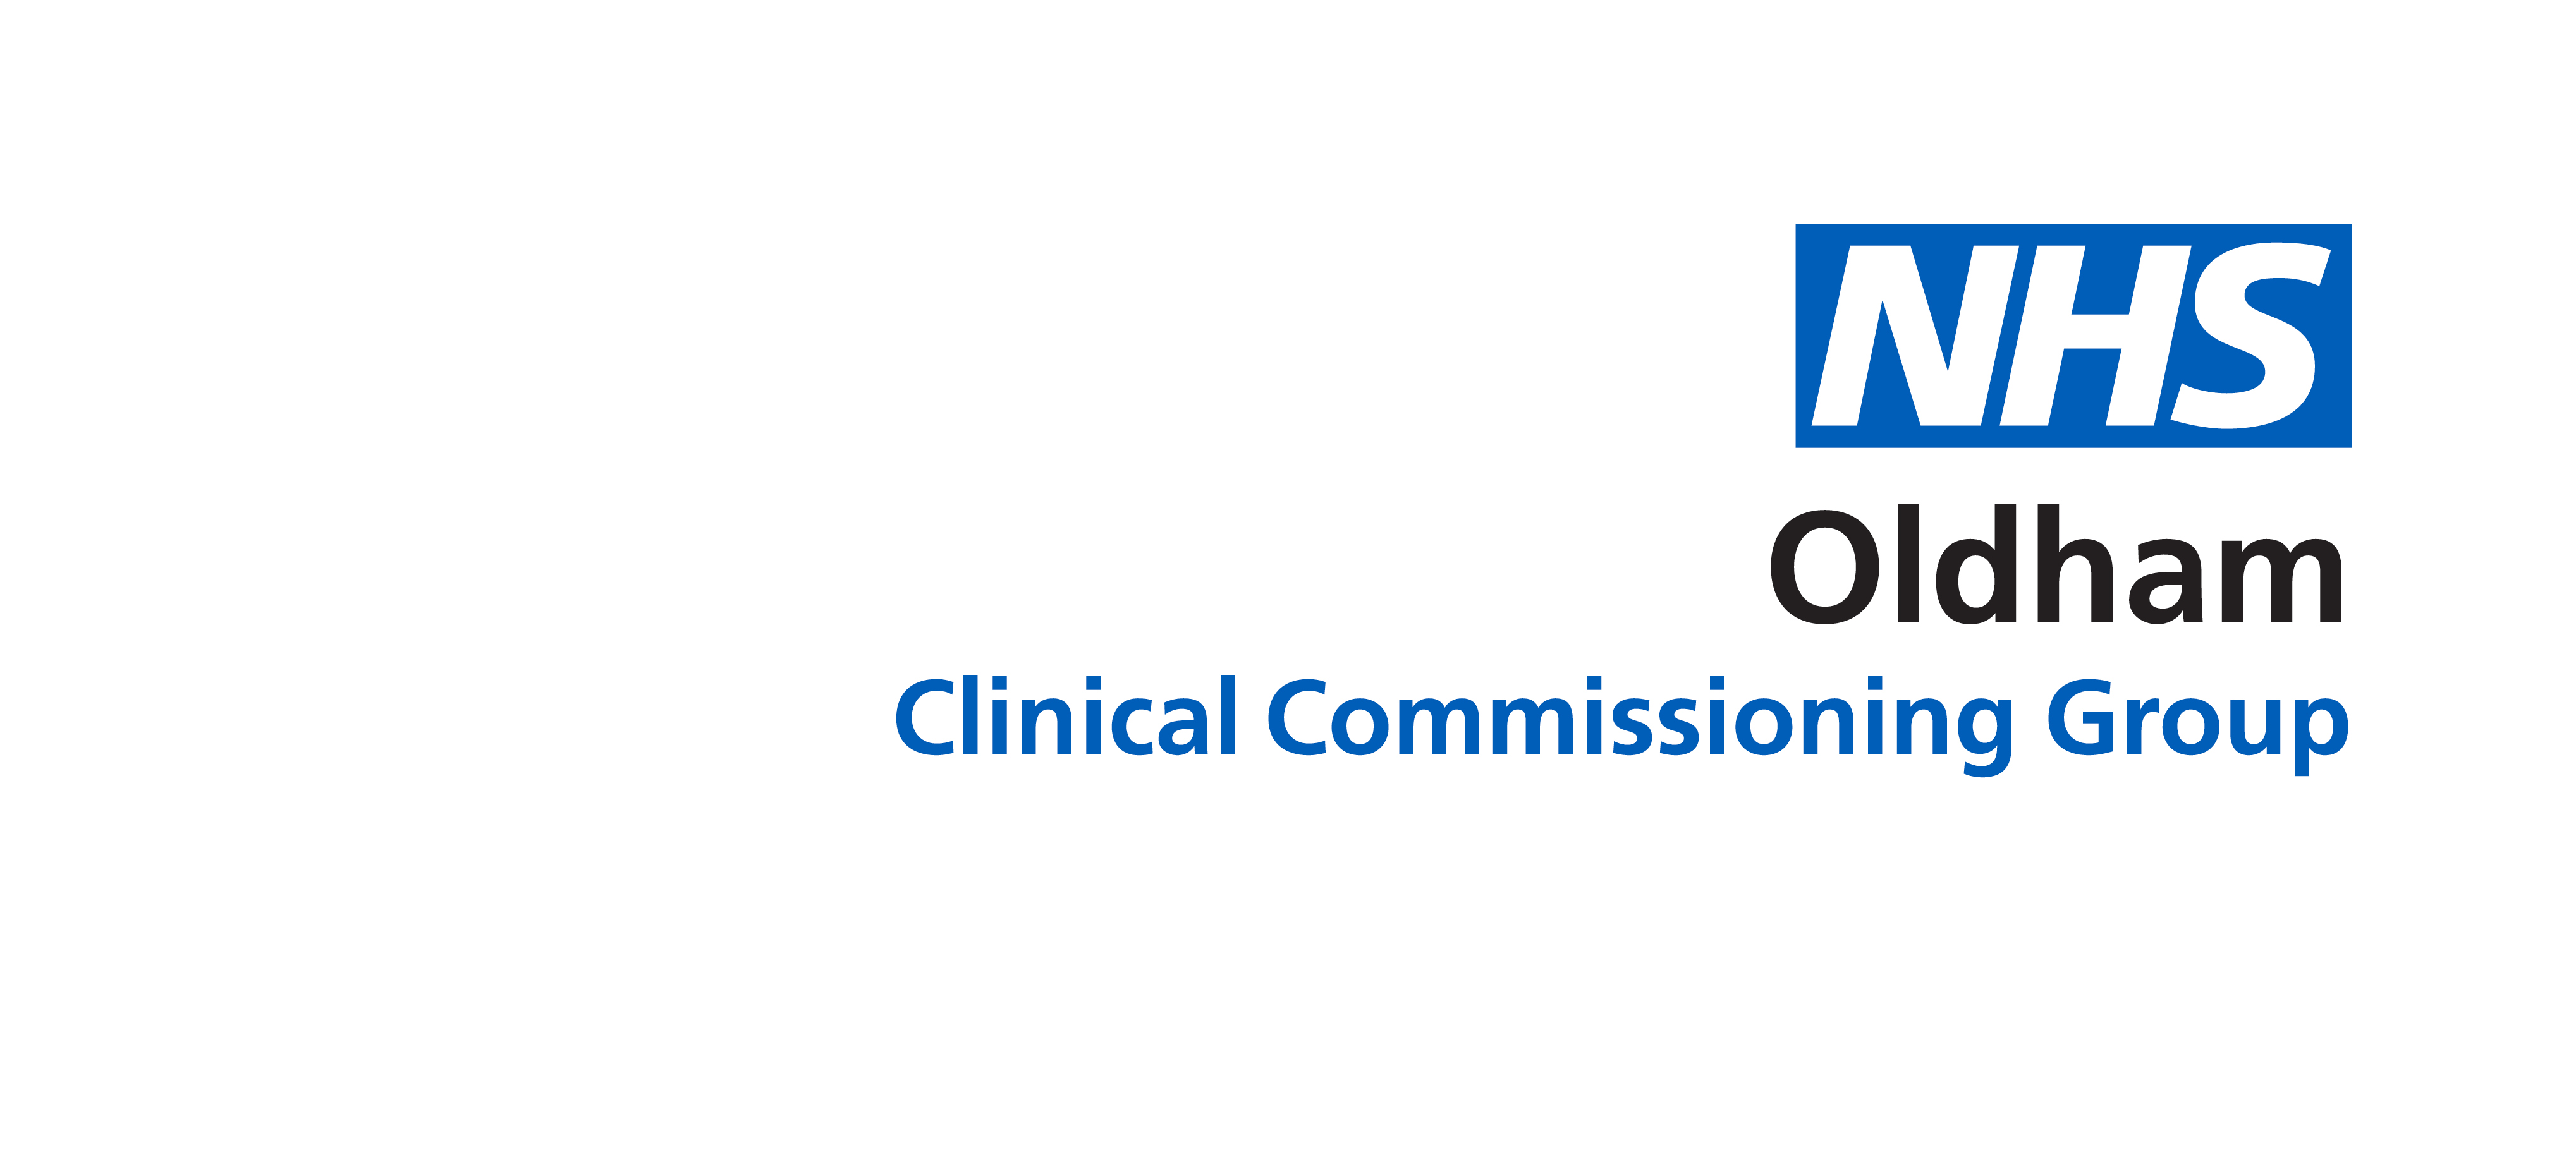 NHS Oldham Clinical Commissioning Group